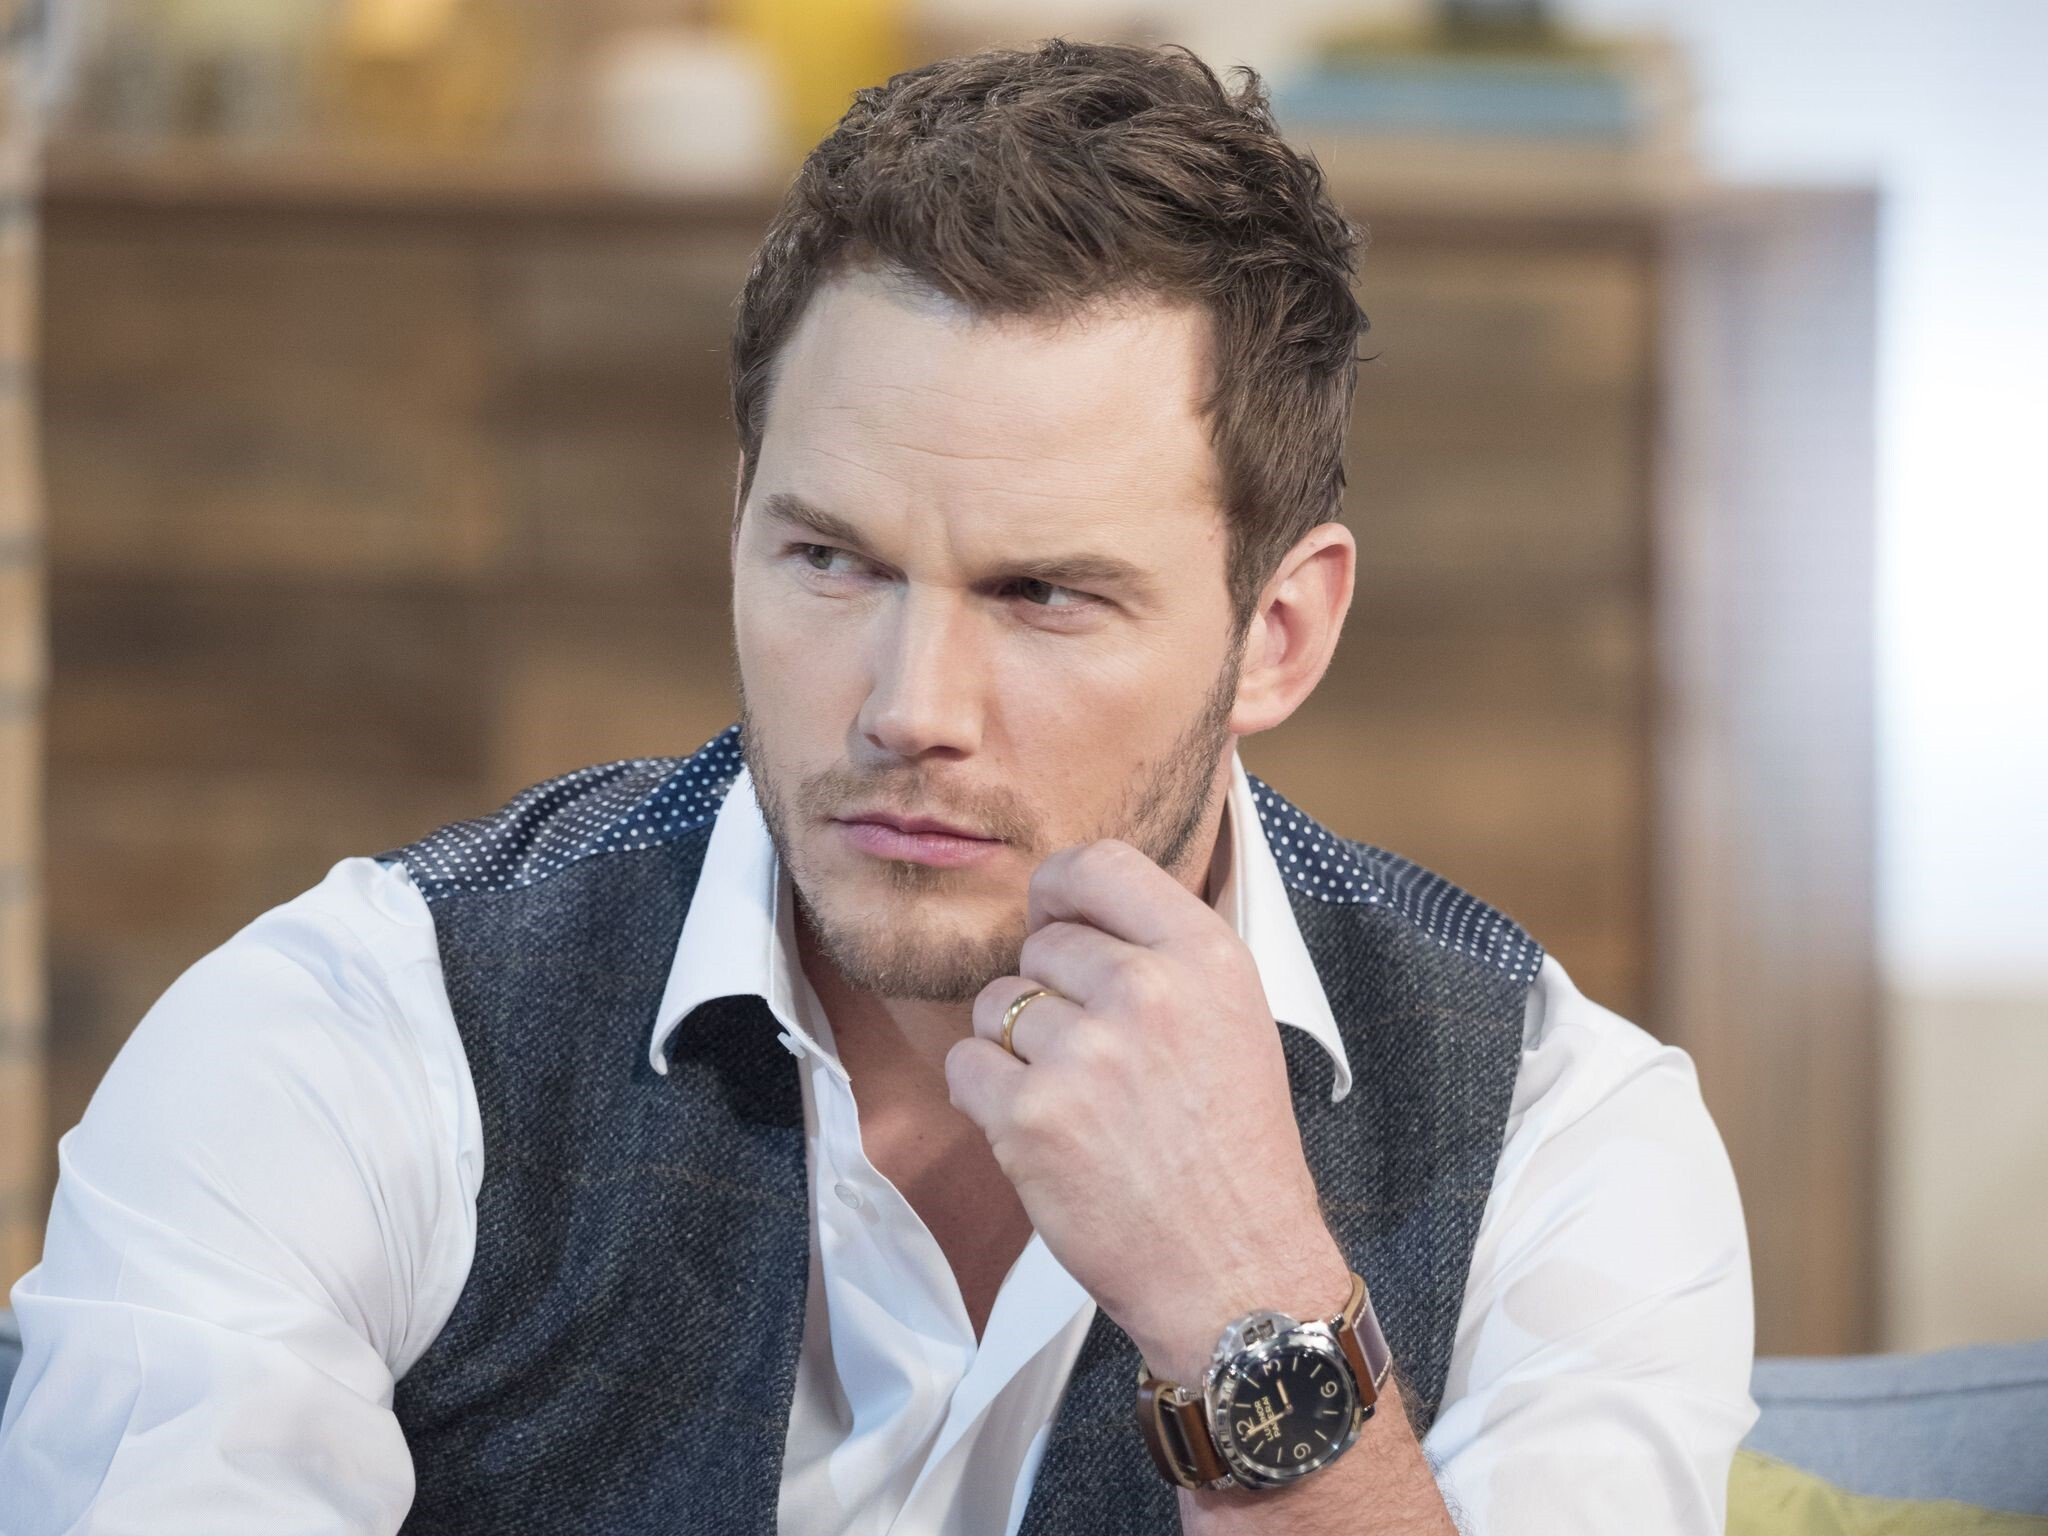 Actors Wallpapers Download: American Actor Chris Pratt HD Wallpapers